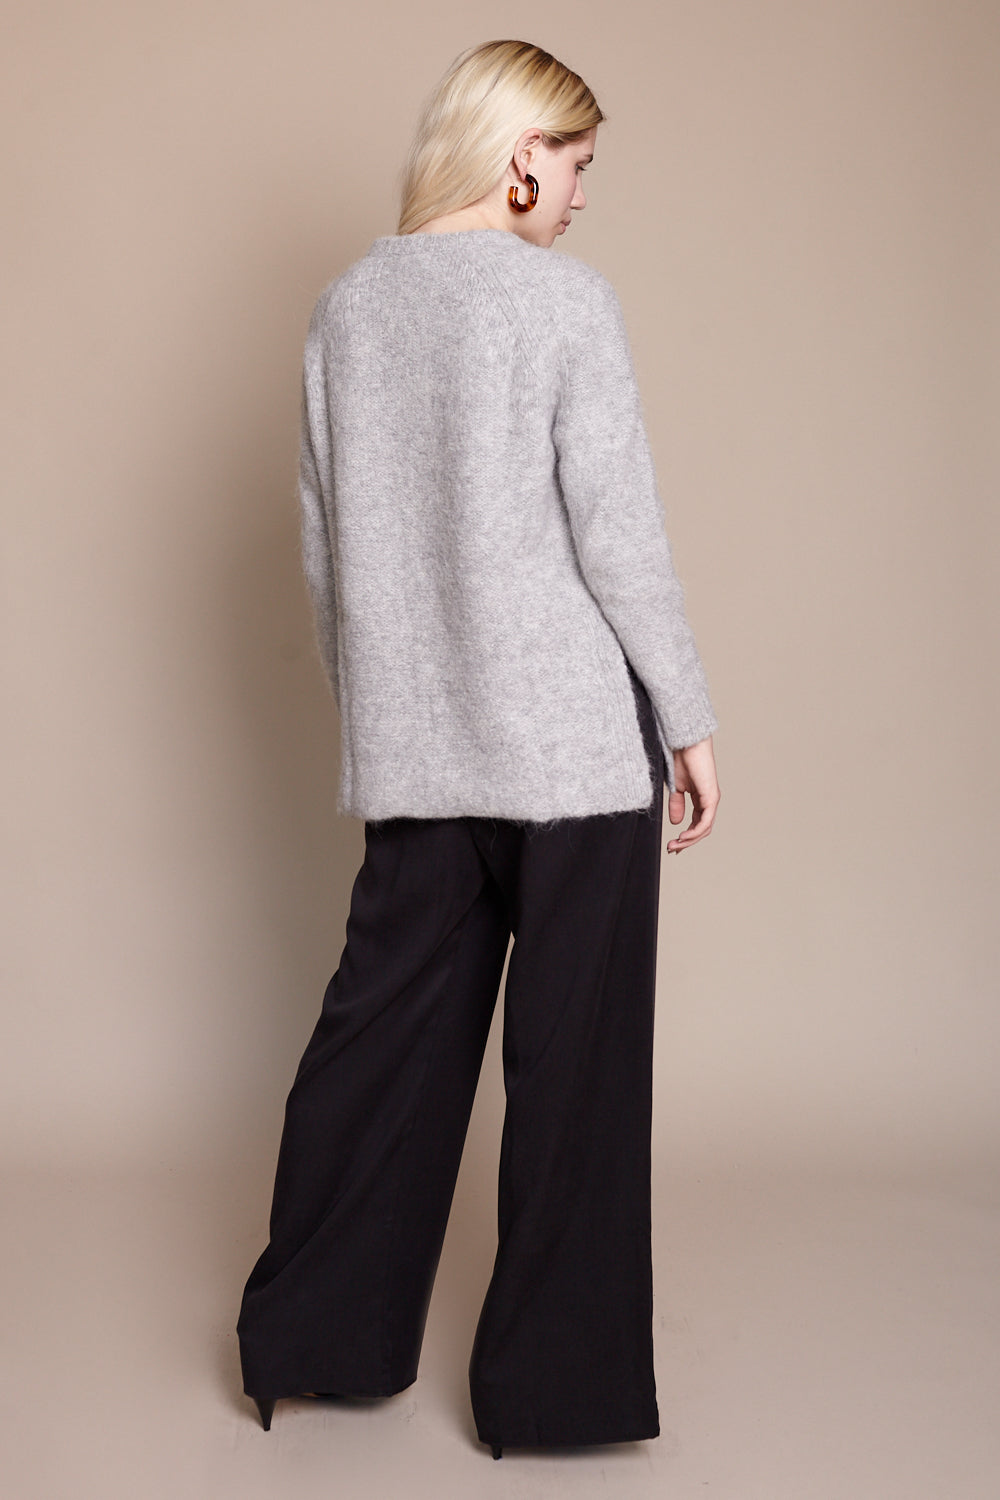 Gorges Sweater in Heather Grey